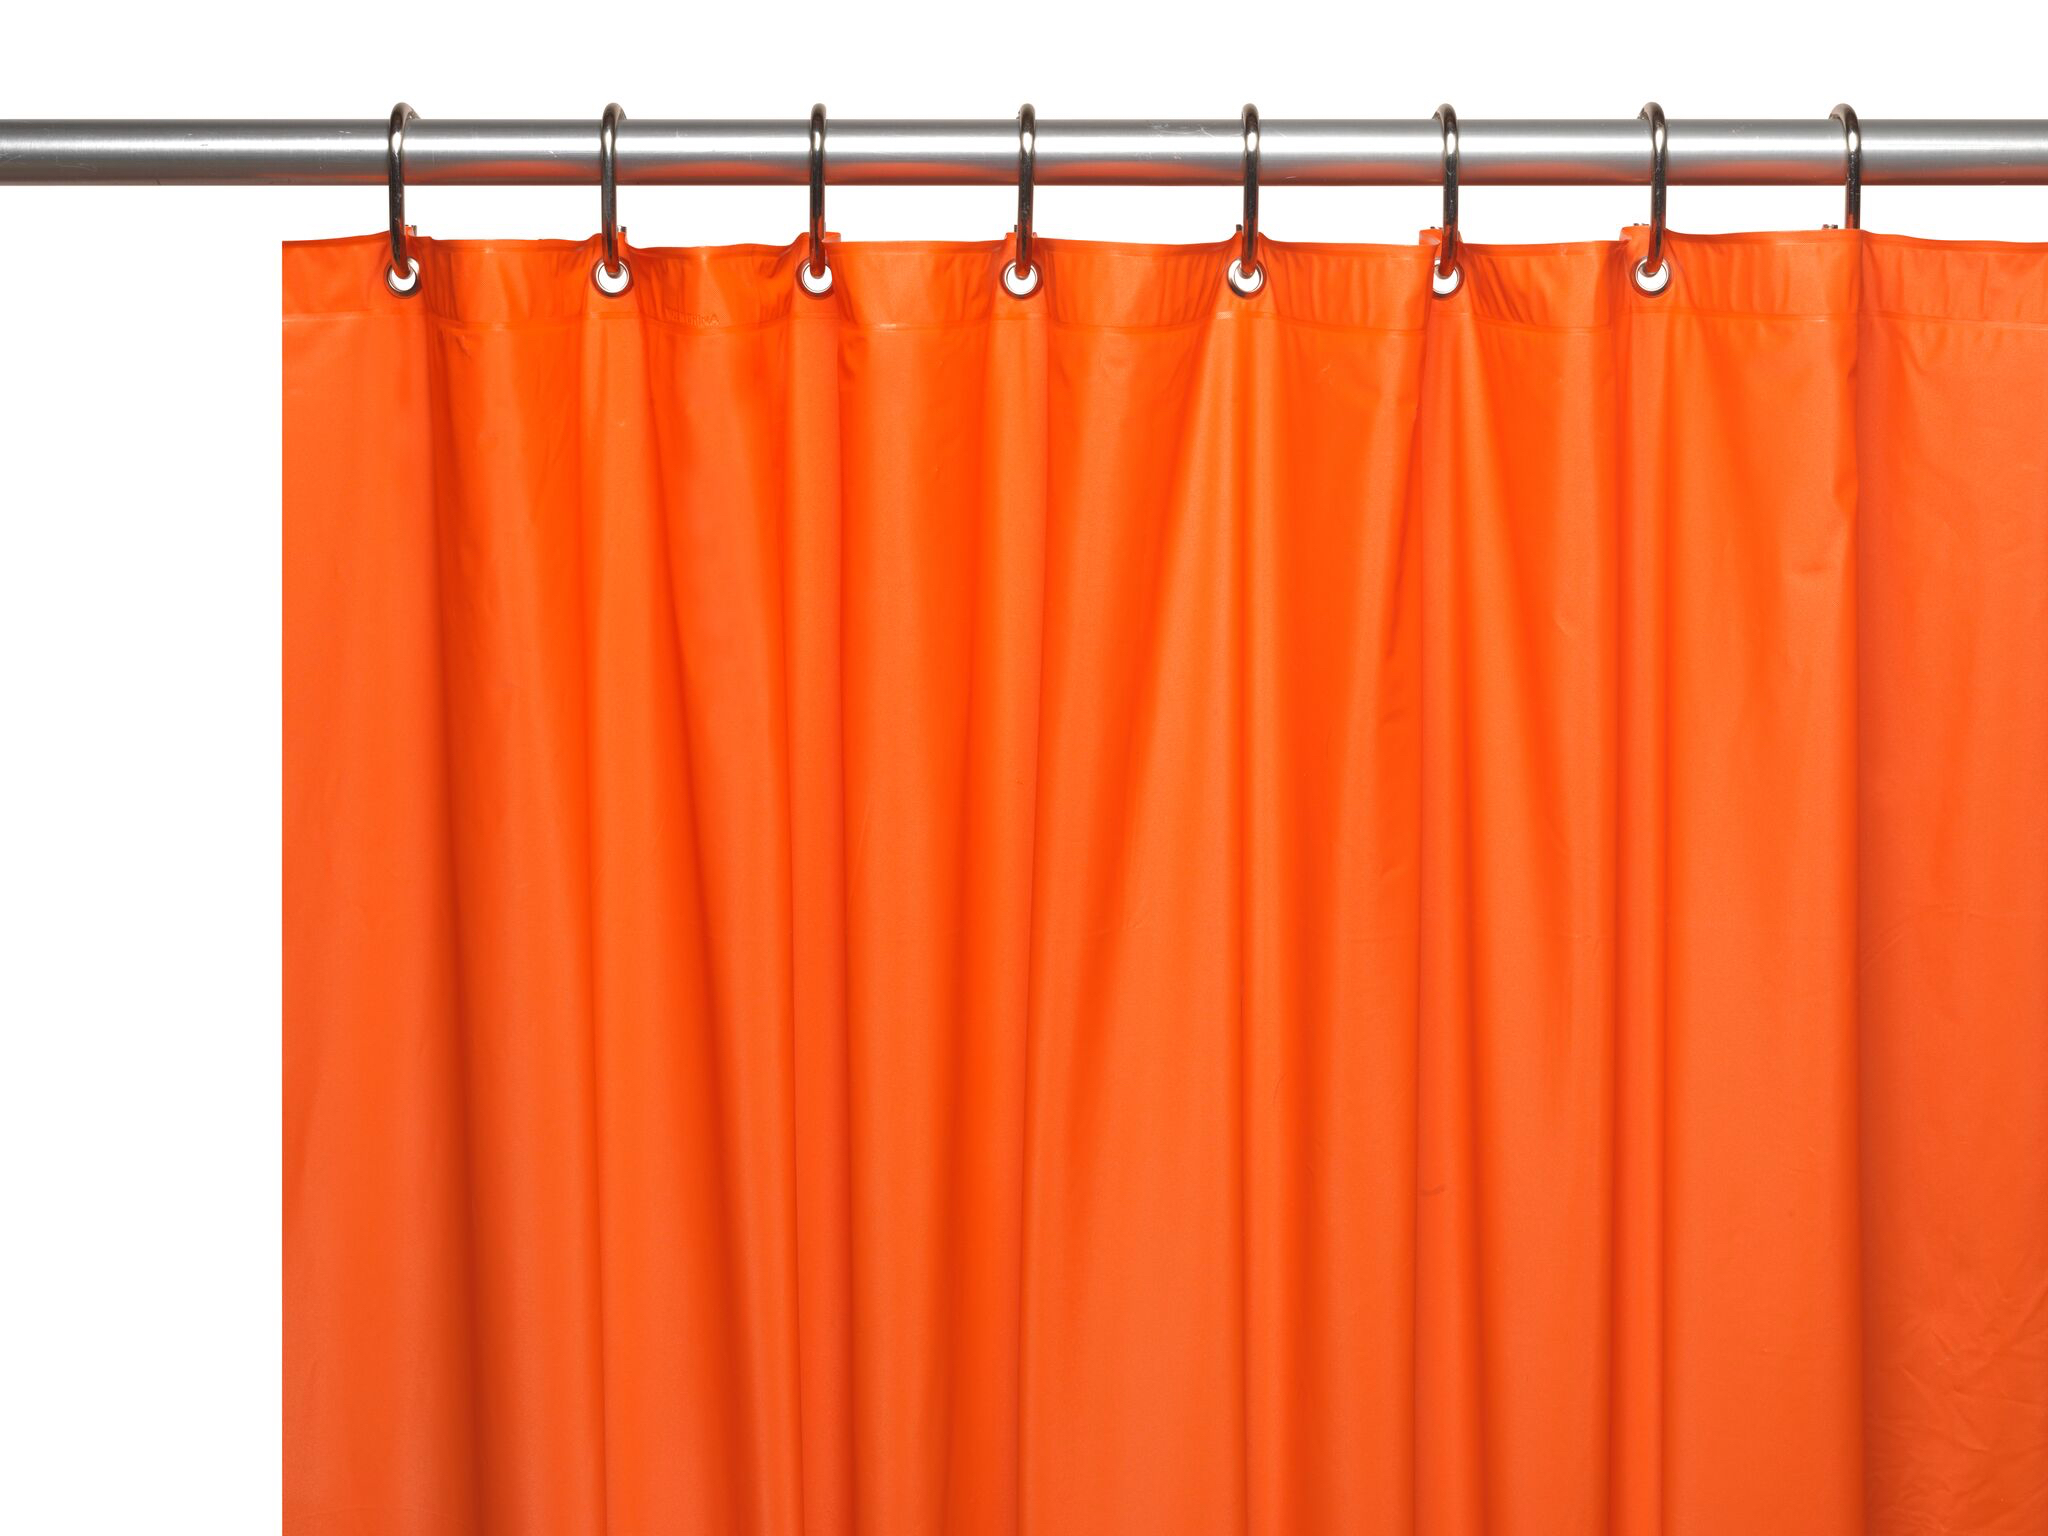 Hotel Collection Premium Heavy Duty Vinyl Shower Curtain Liner With Metal  Grommets   Orange